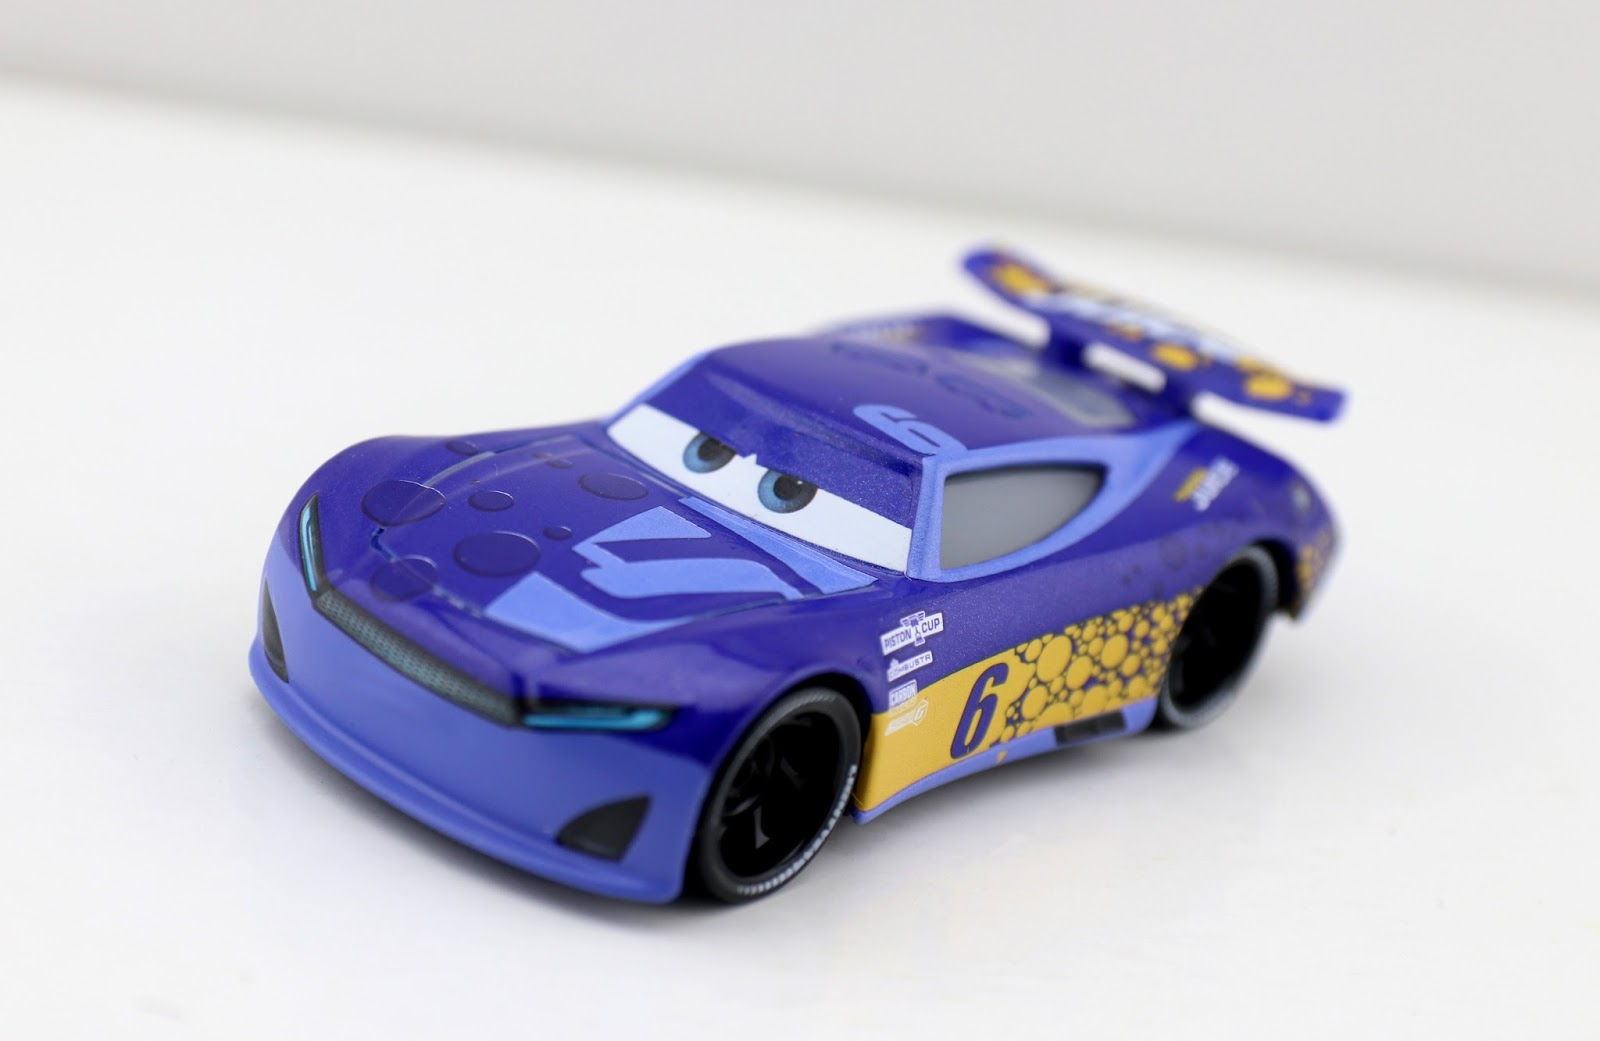 Cars 3 Bubba Wheelhouse Transberry Juice diecast